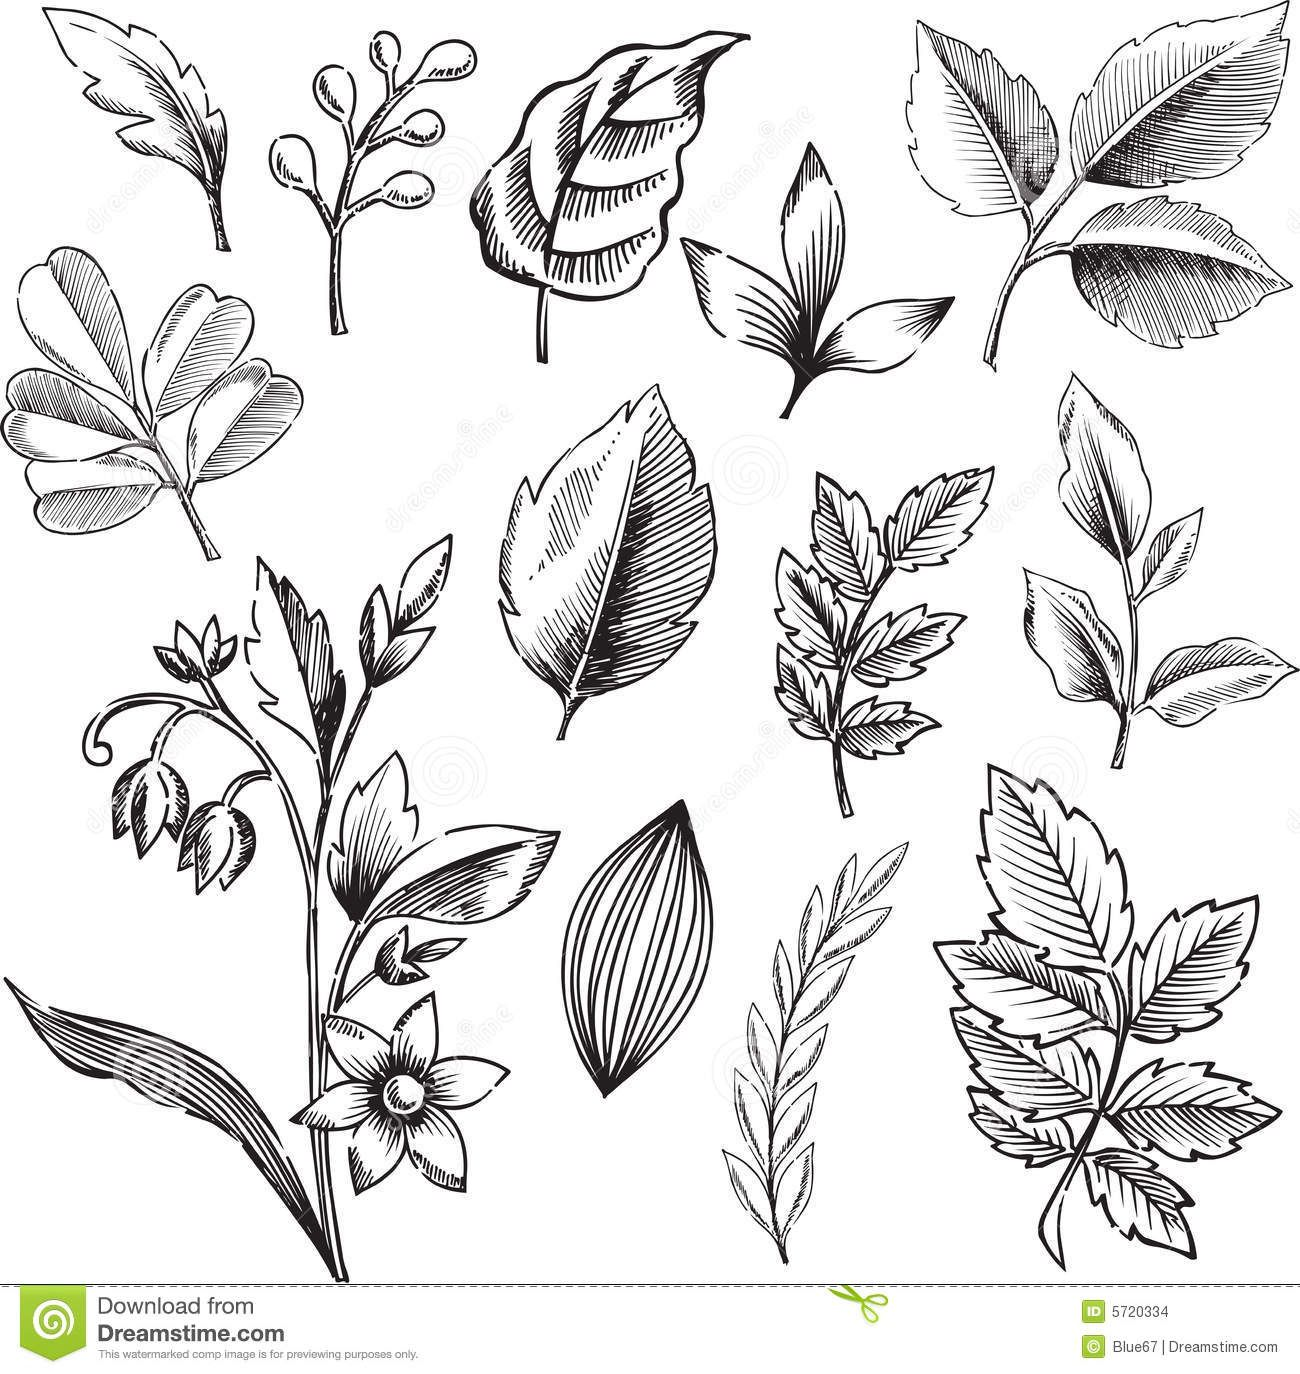 Leaf Illustrations Black And White - Google Search